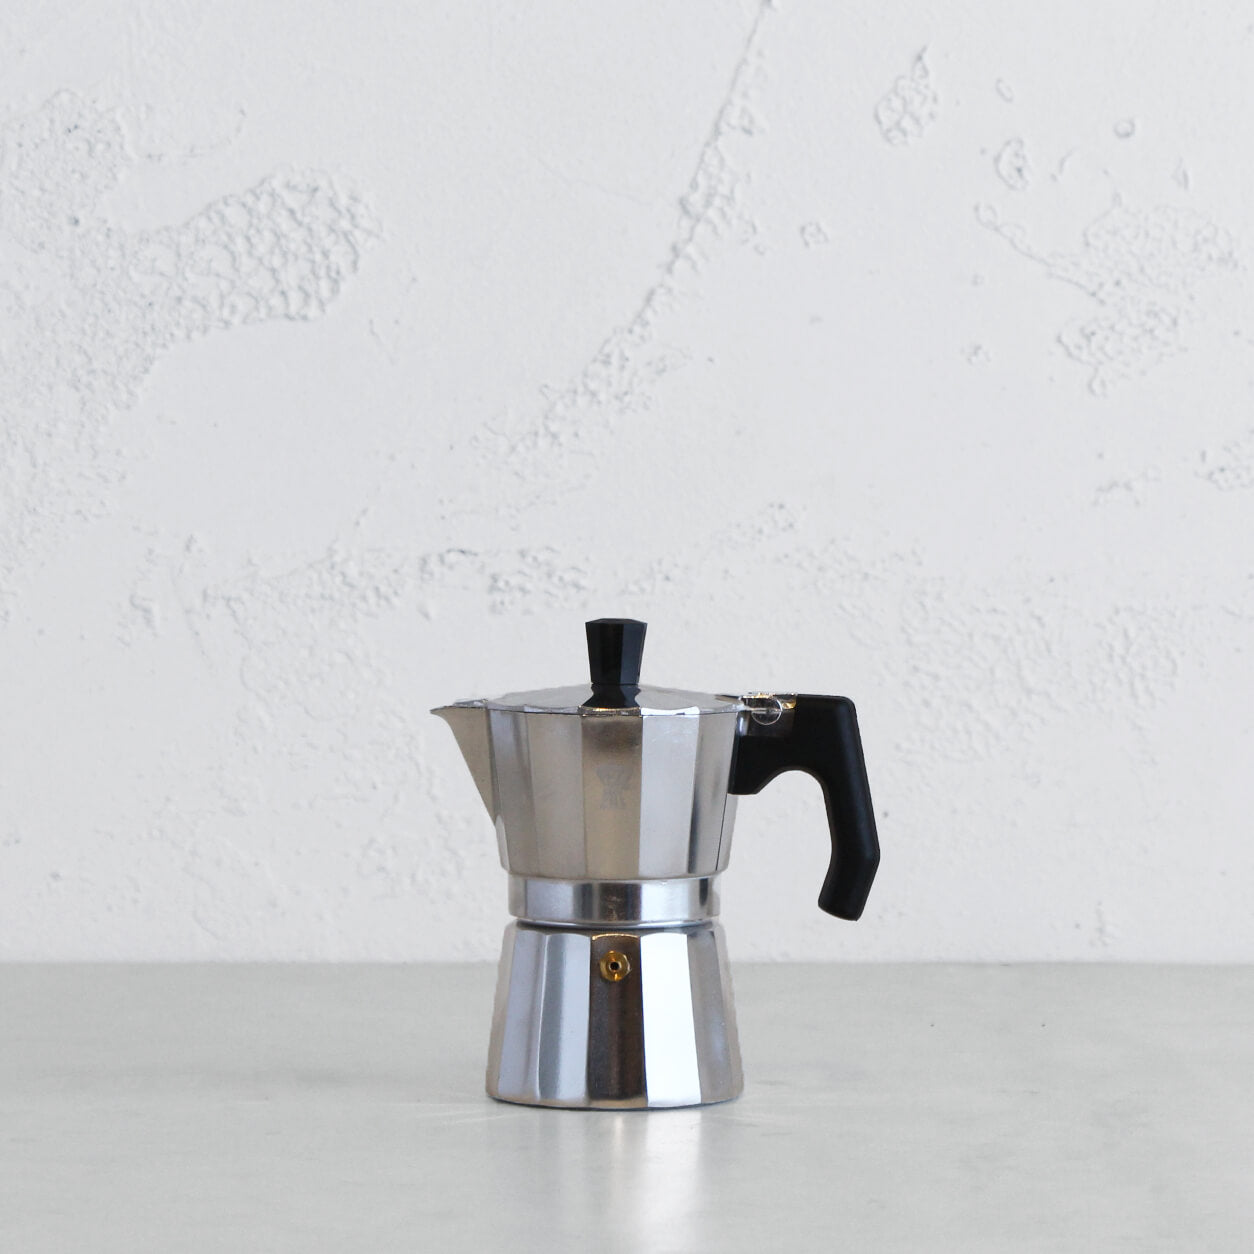 PEZZETTI LUXEXPRESS ITALIAN COFFEE MAKER  |  3 CUP  | STEEL